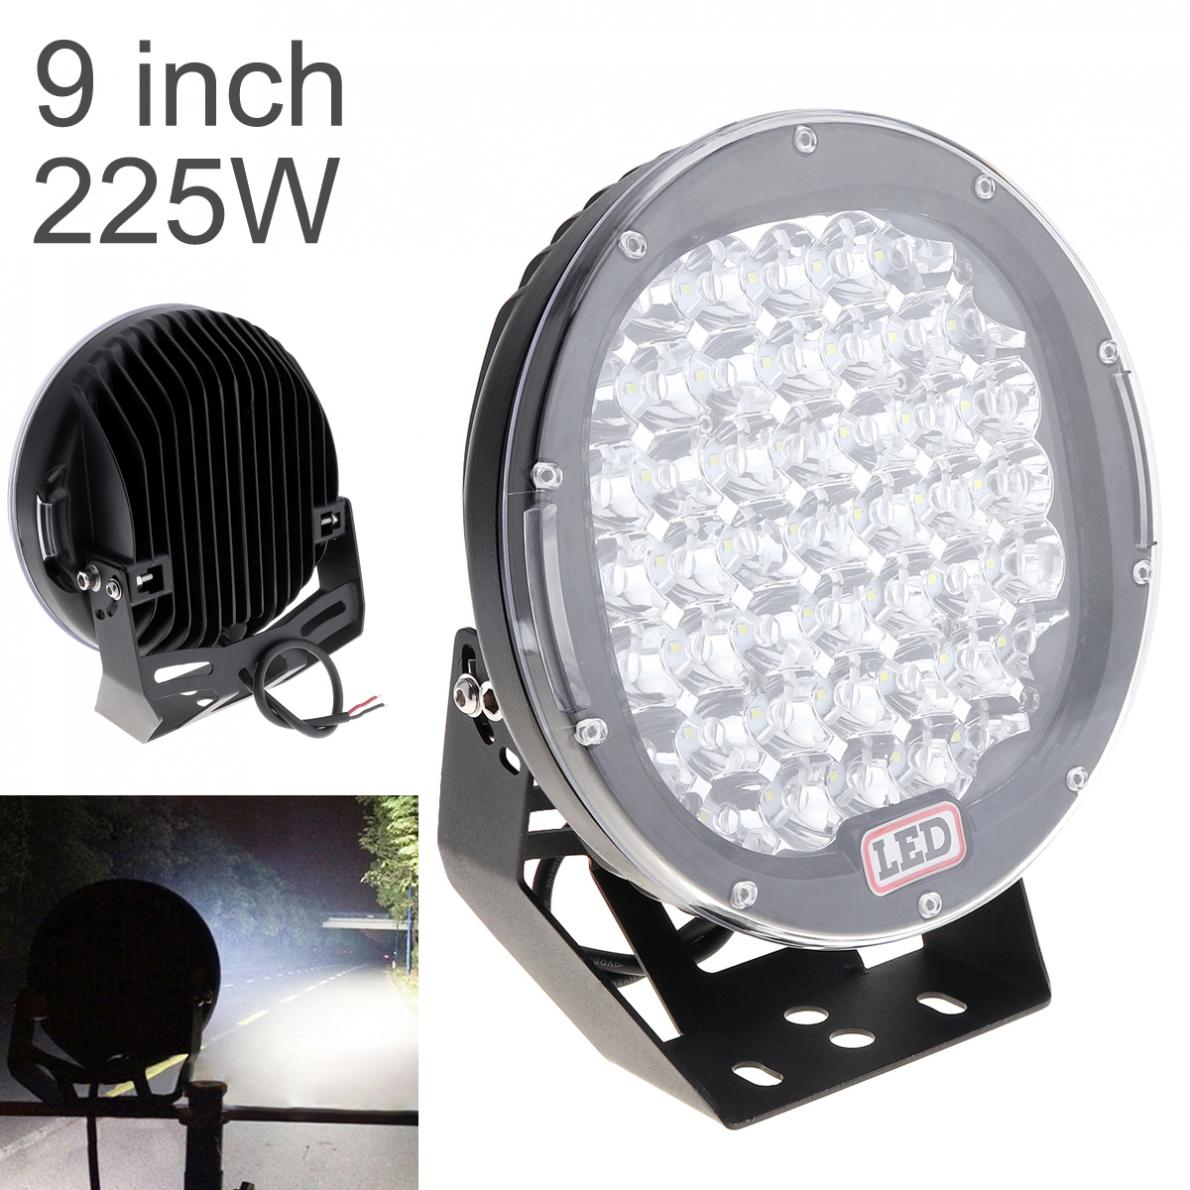 1 Piece 9 Inch Round 225W LED Car Worklight Spot / Flood Light Vehicle Headlight Driving Lights for Offroad SUV ATV Truck Boat